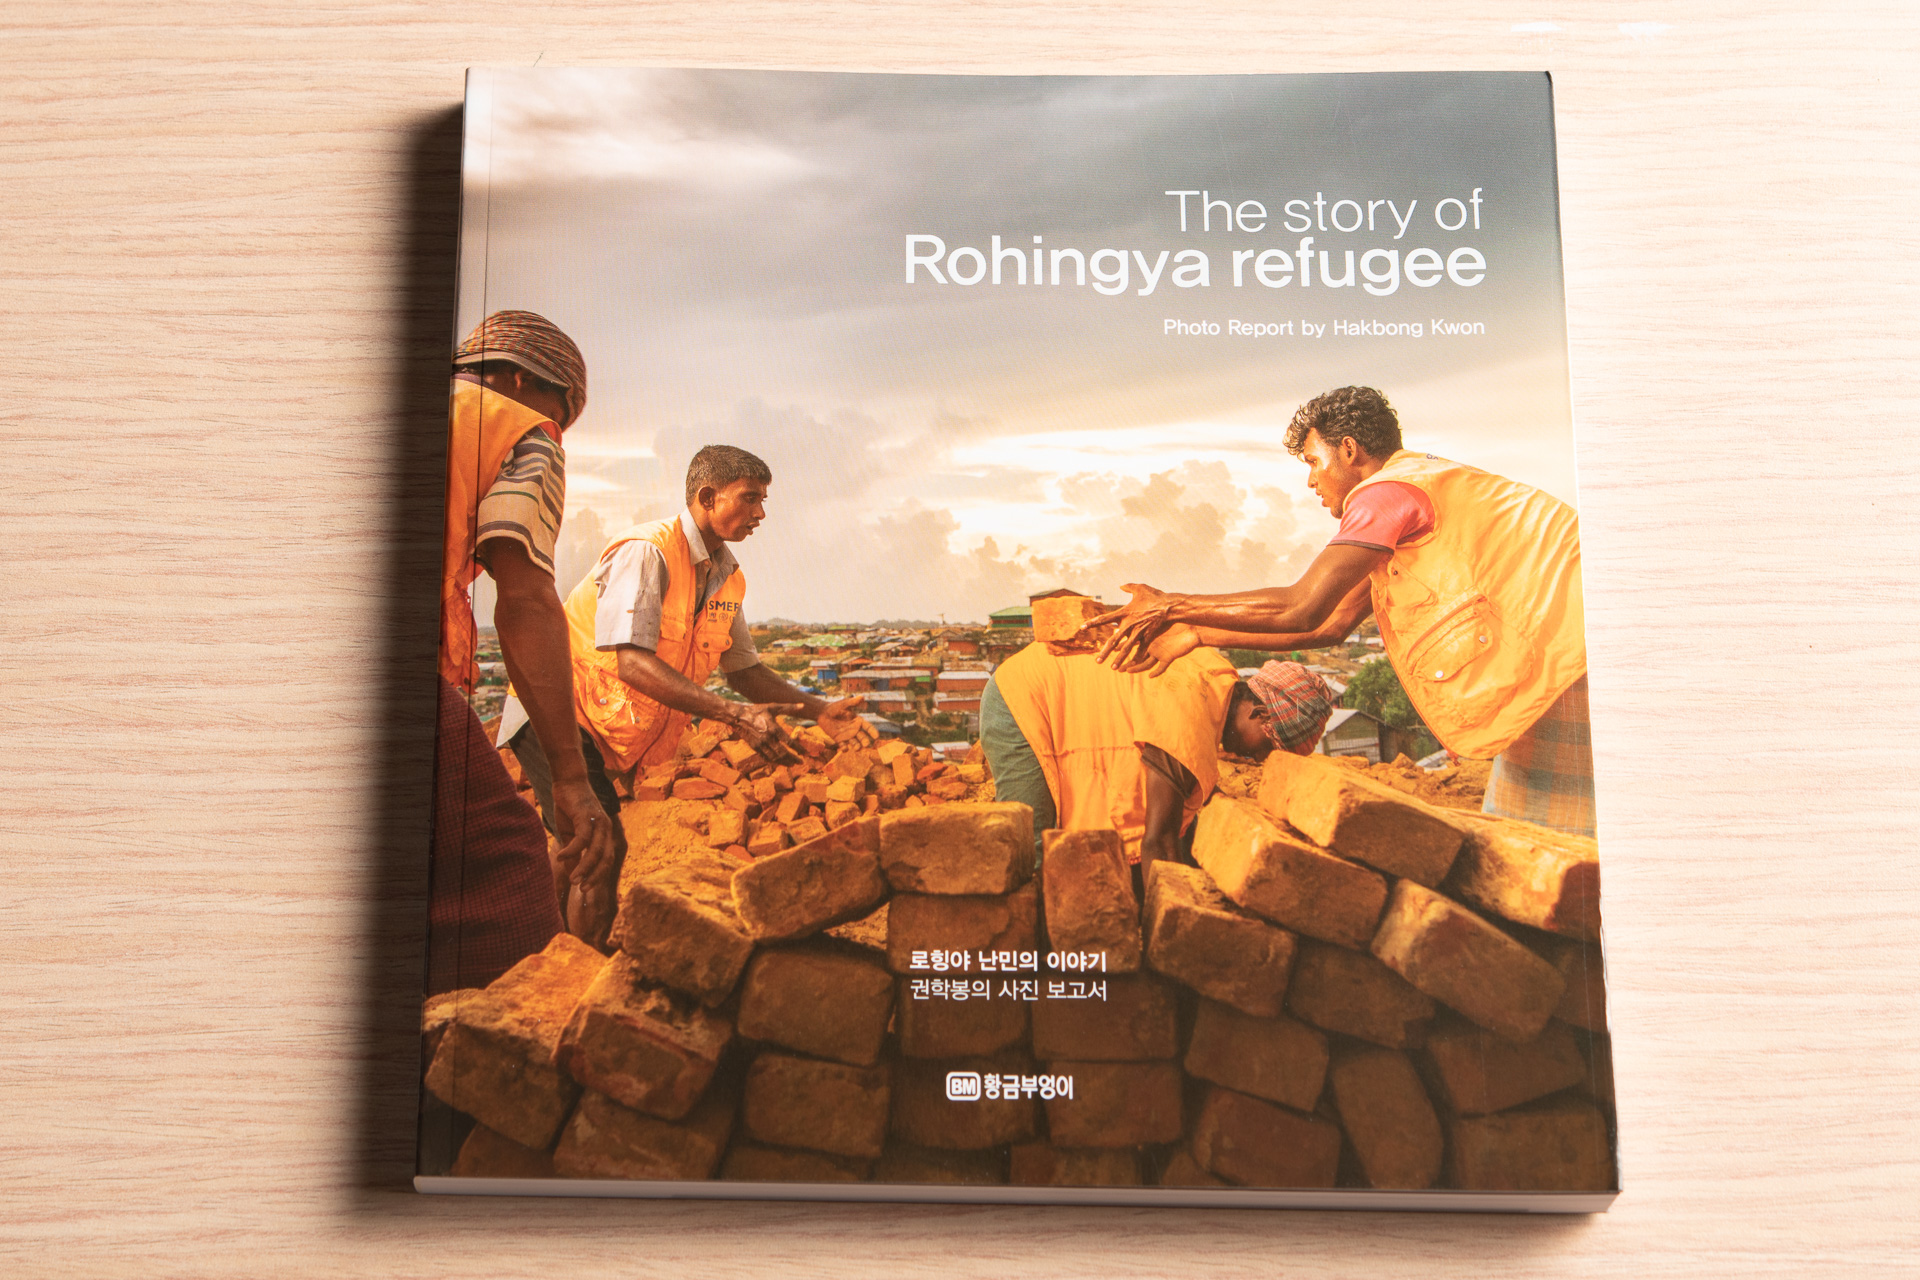 The story of Rohingya refugee, photo report by Hakbong Kwon.